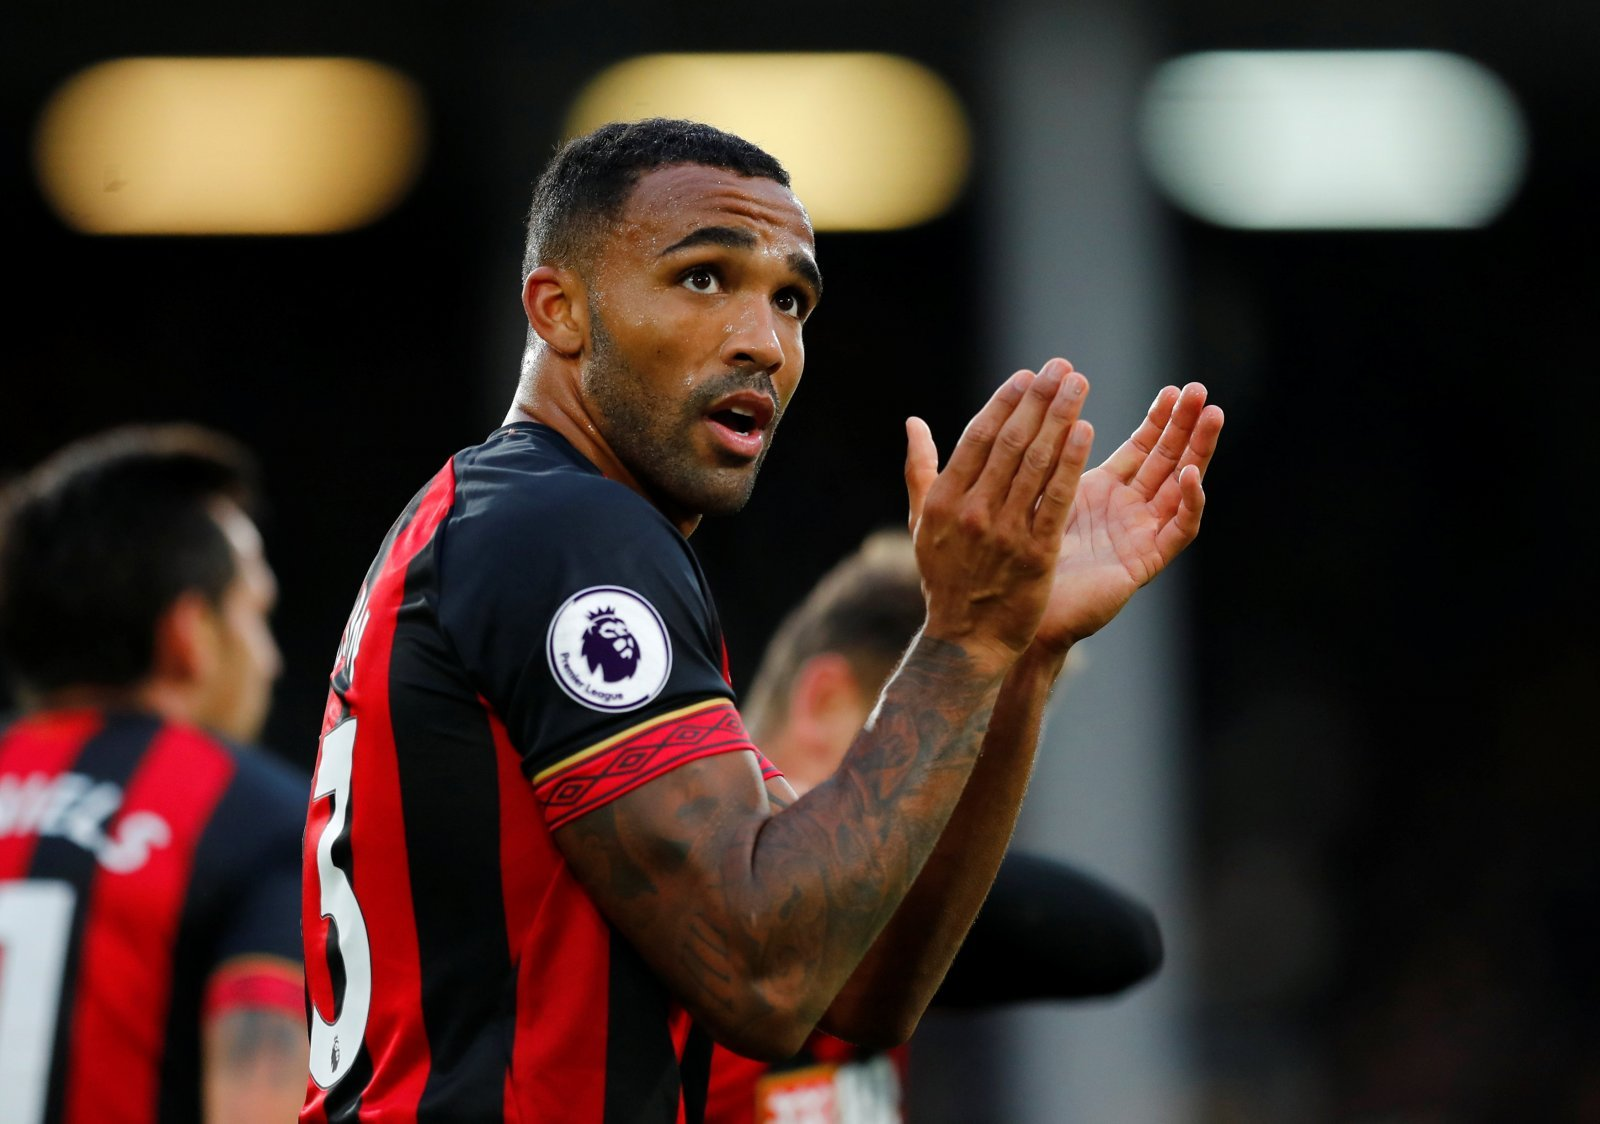 Bournemouth: Callum Wilson should only be sold to a top-six club amid West Ham interest